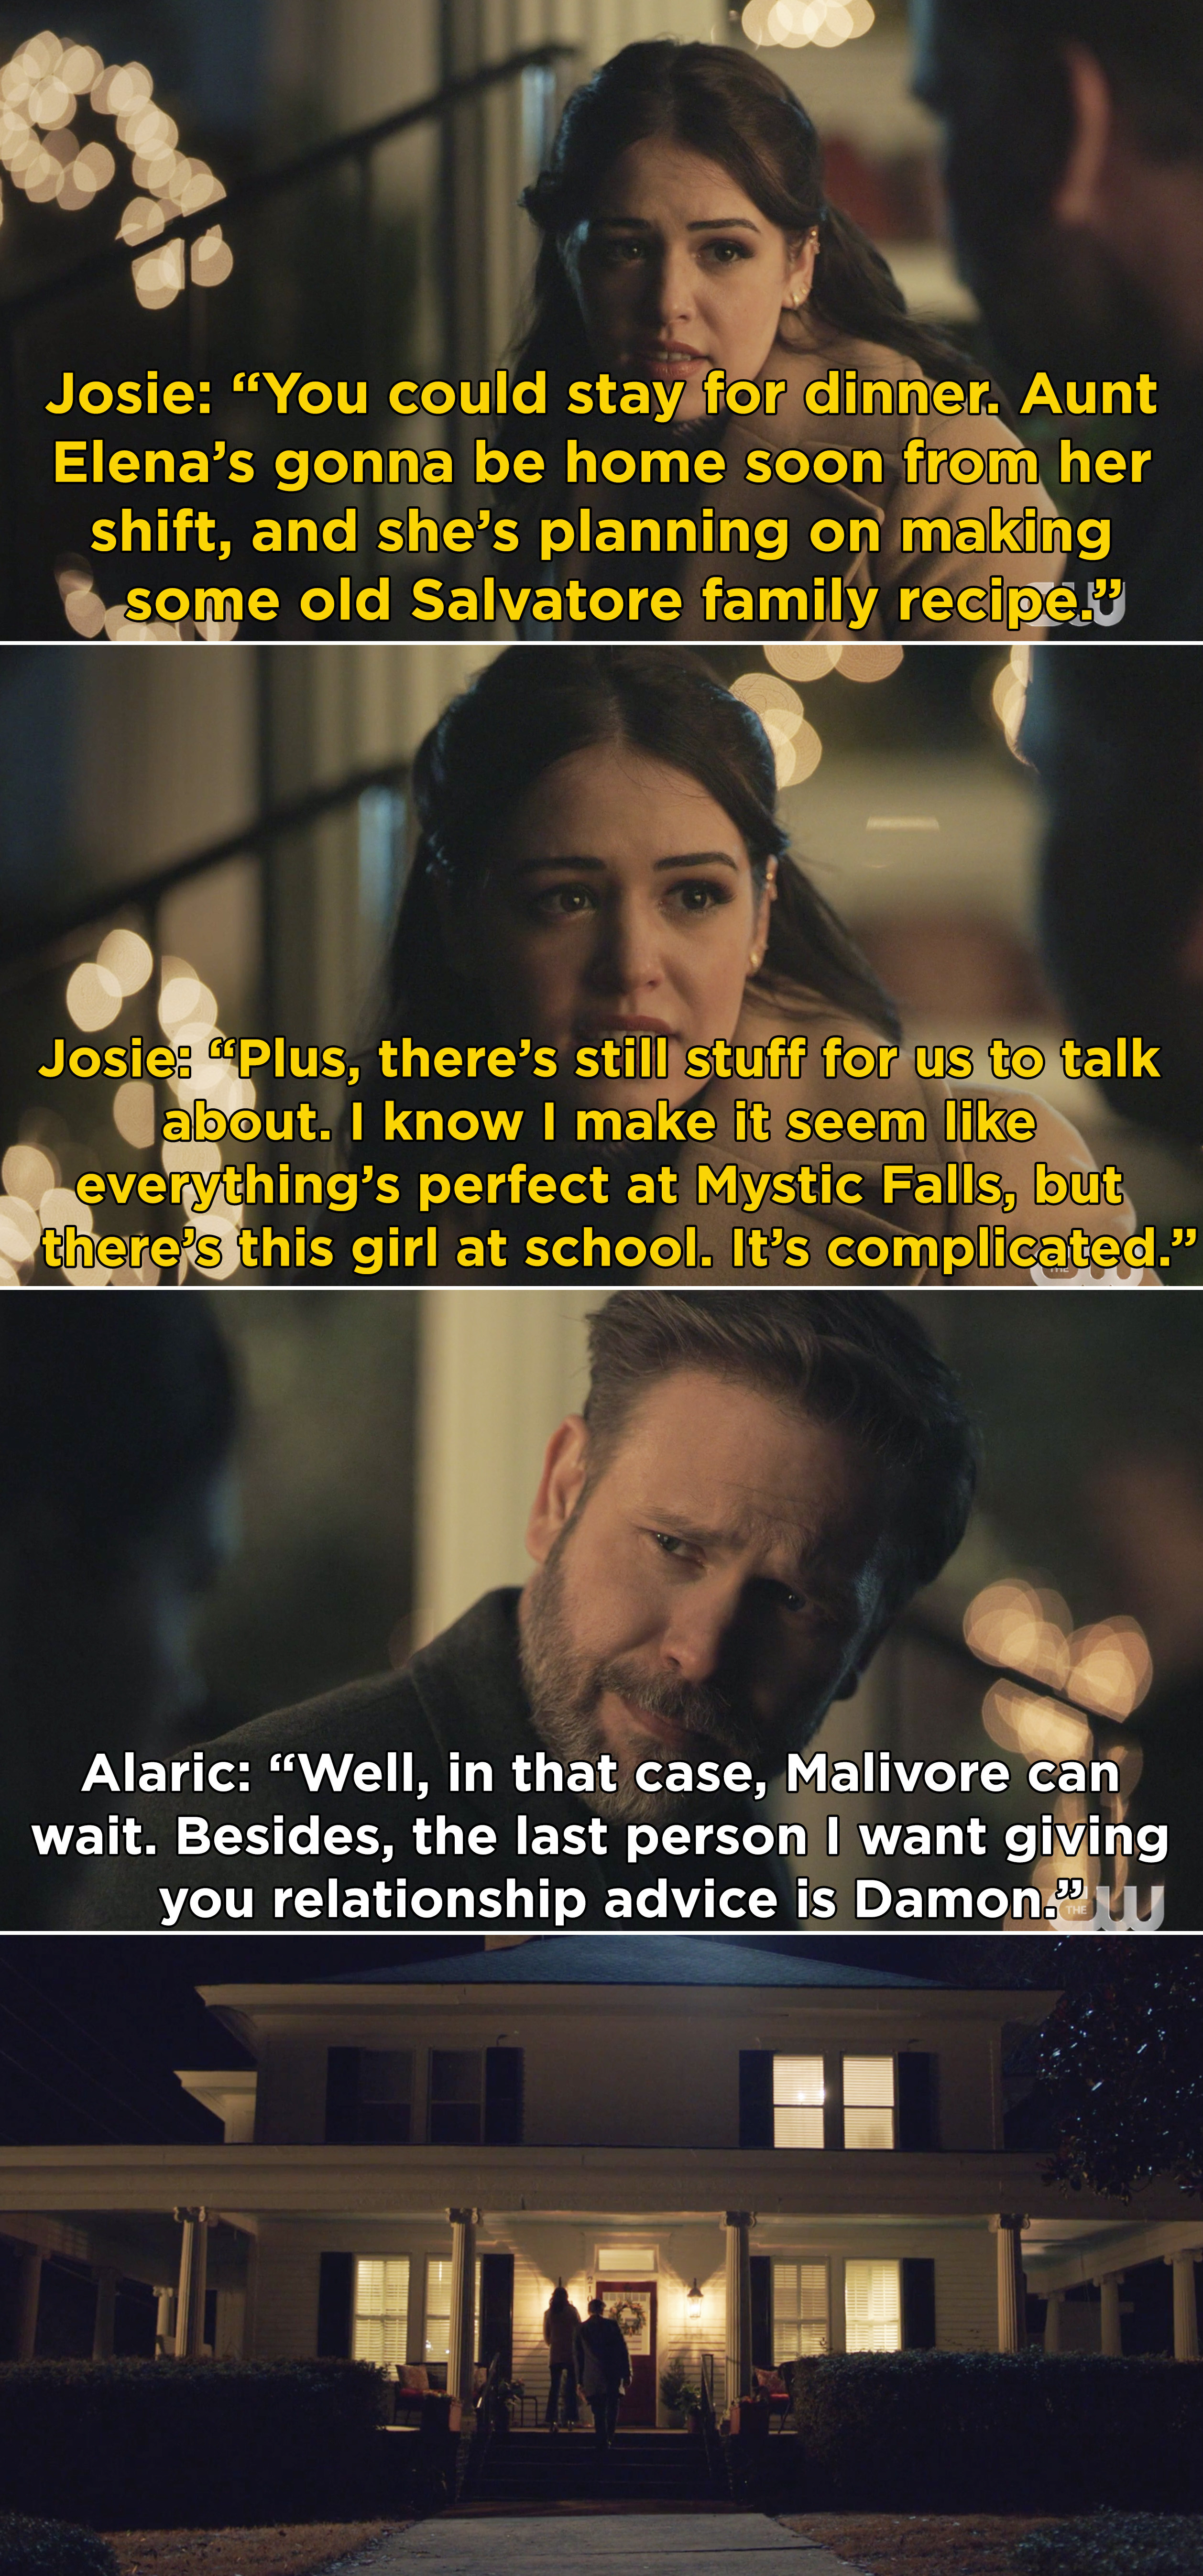 Josie telling Alaric to come inside because Aunt Elena is making dinner and Alaric agrees because he doesn't want Damon giving Josie relationship advice